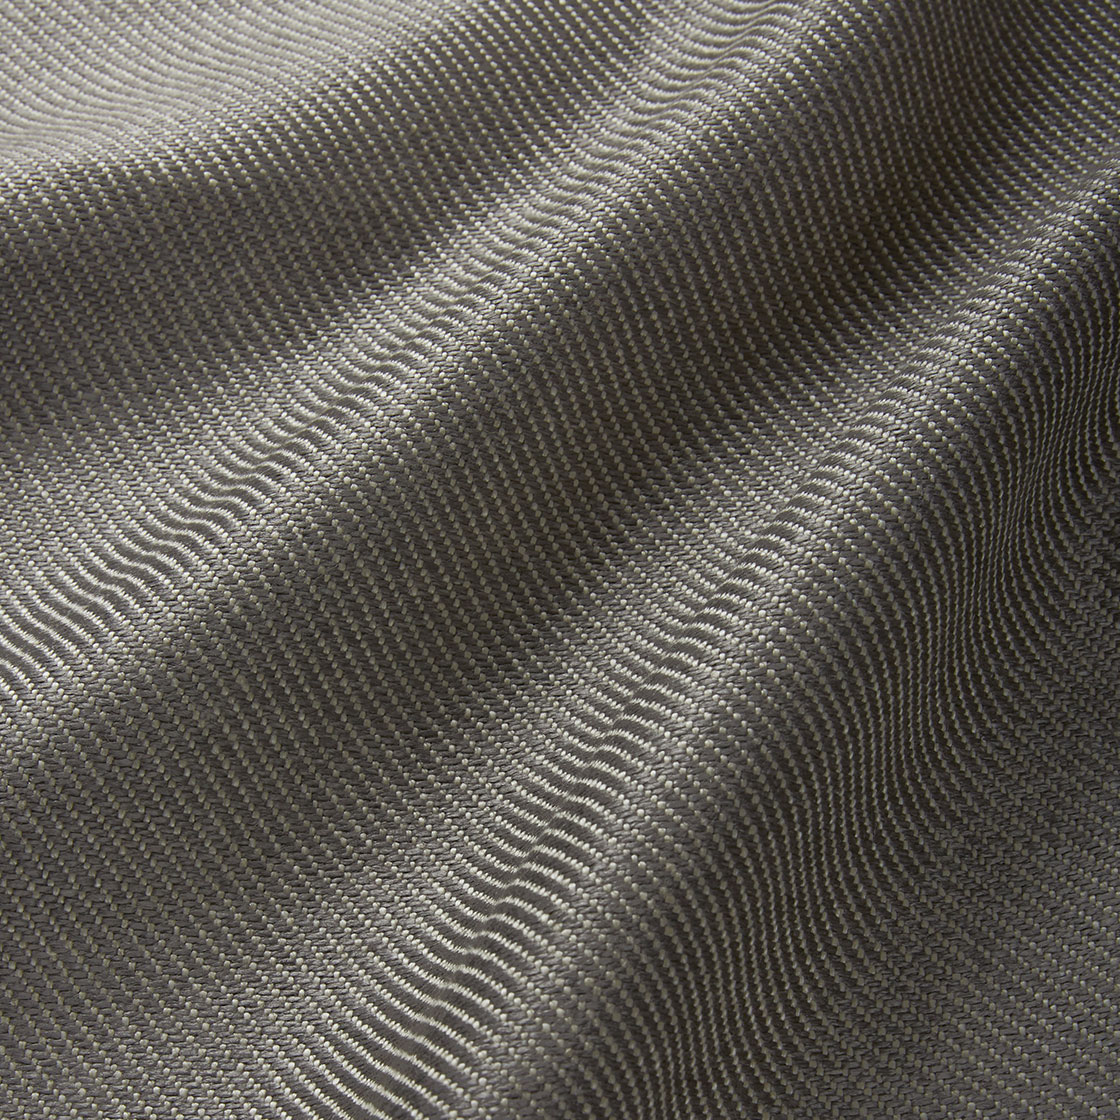 Novara Linen - Steel Grey - Beaumont & Fletcher - Beaumont & Fletcher